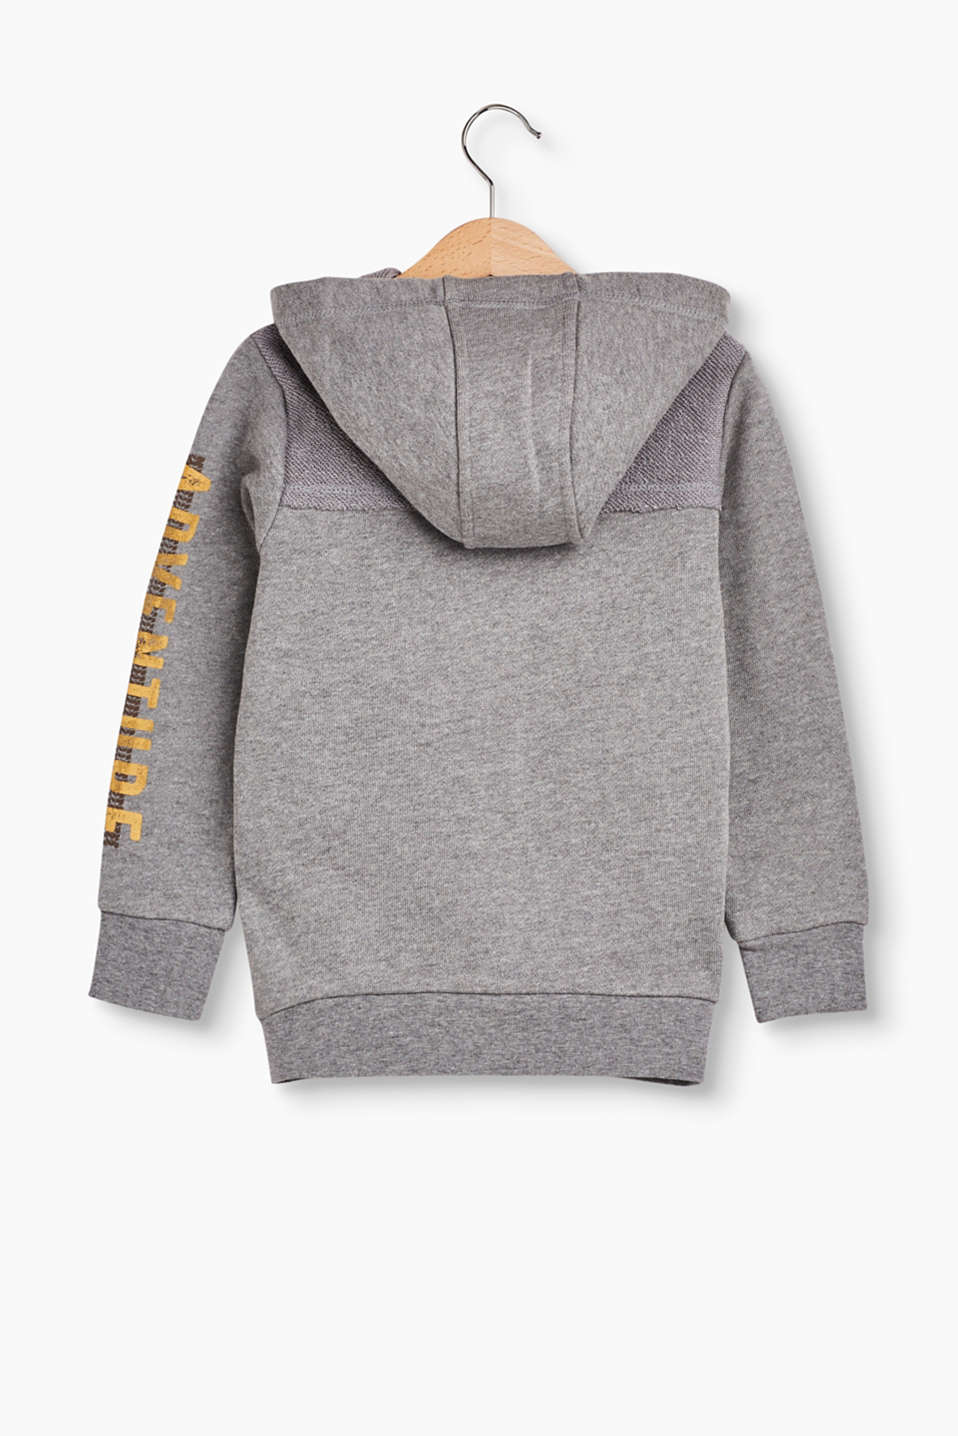 Hooded sweatshirt jacket, inside-out effect